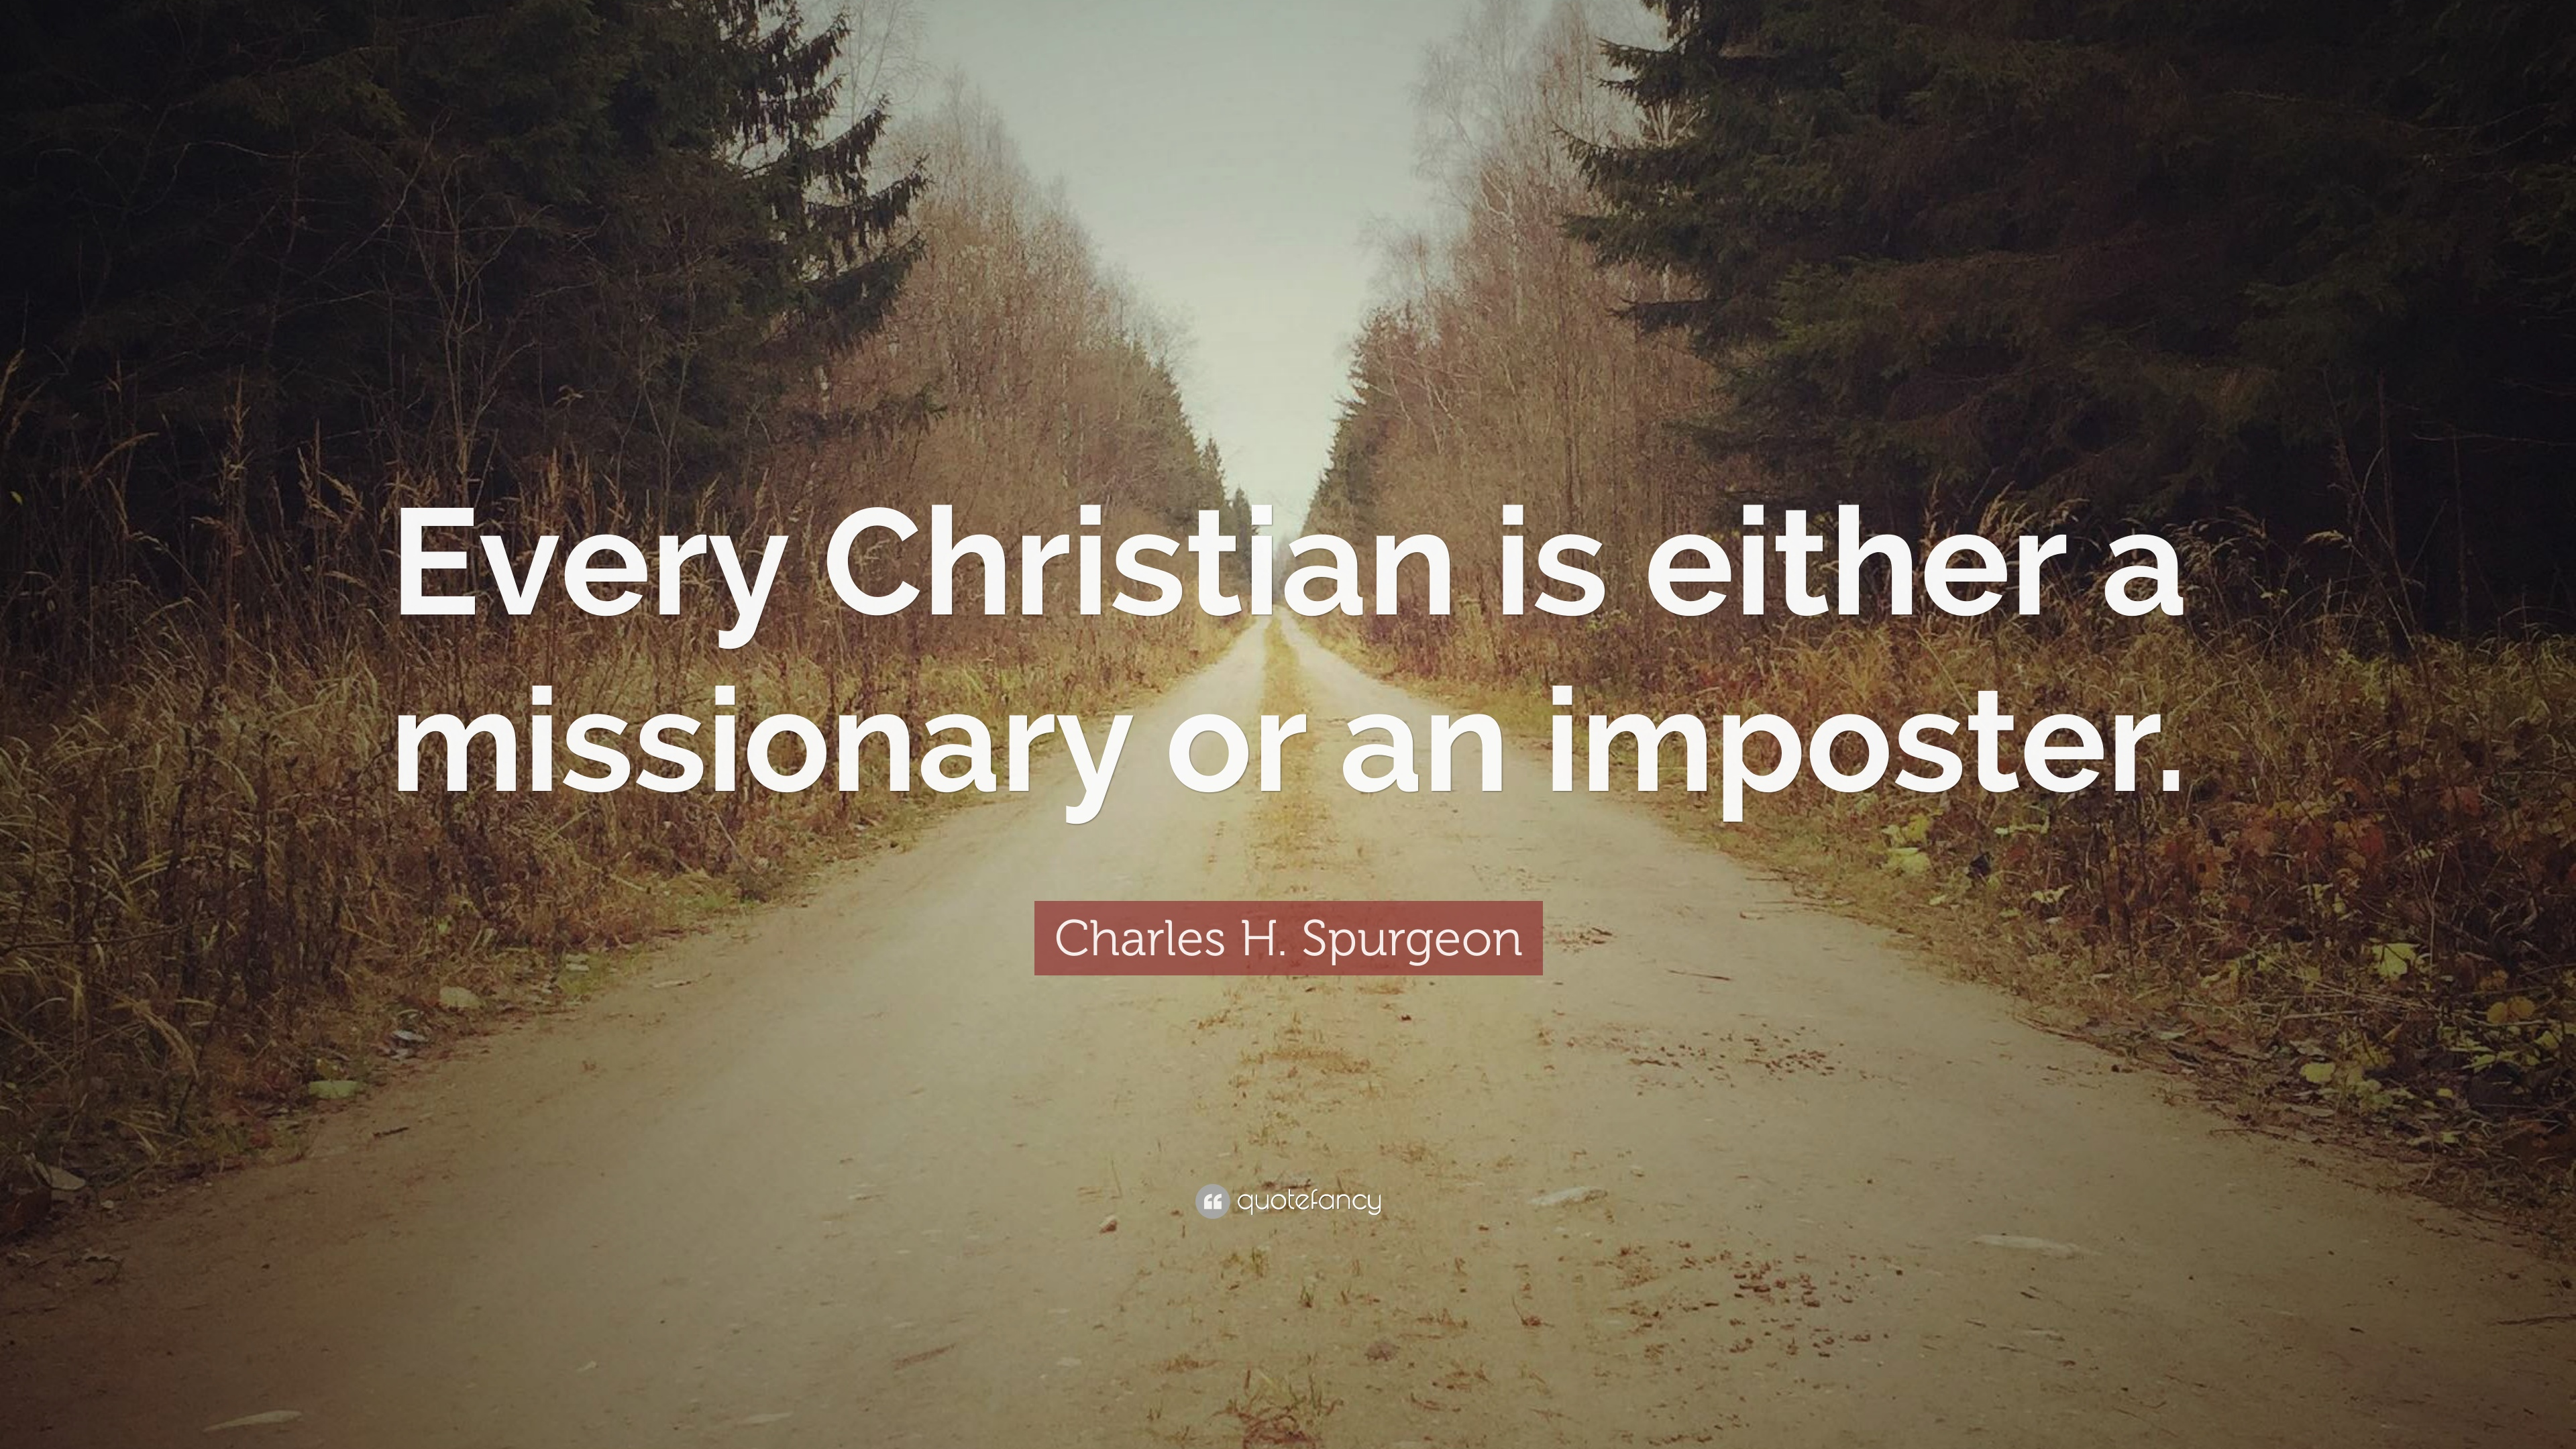 Charles H. Spurgeon Quotes (100 Wallpapers)